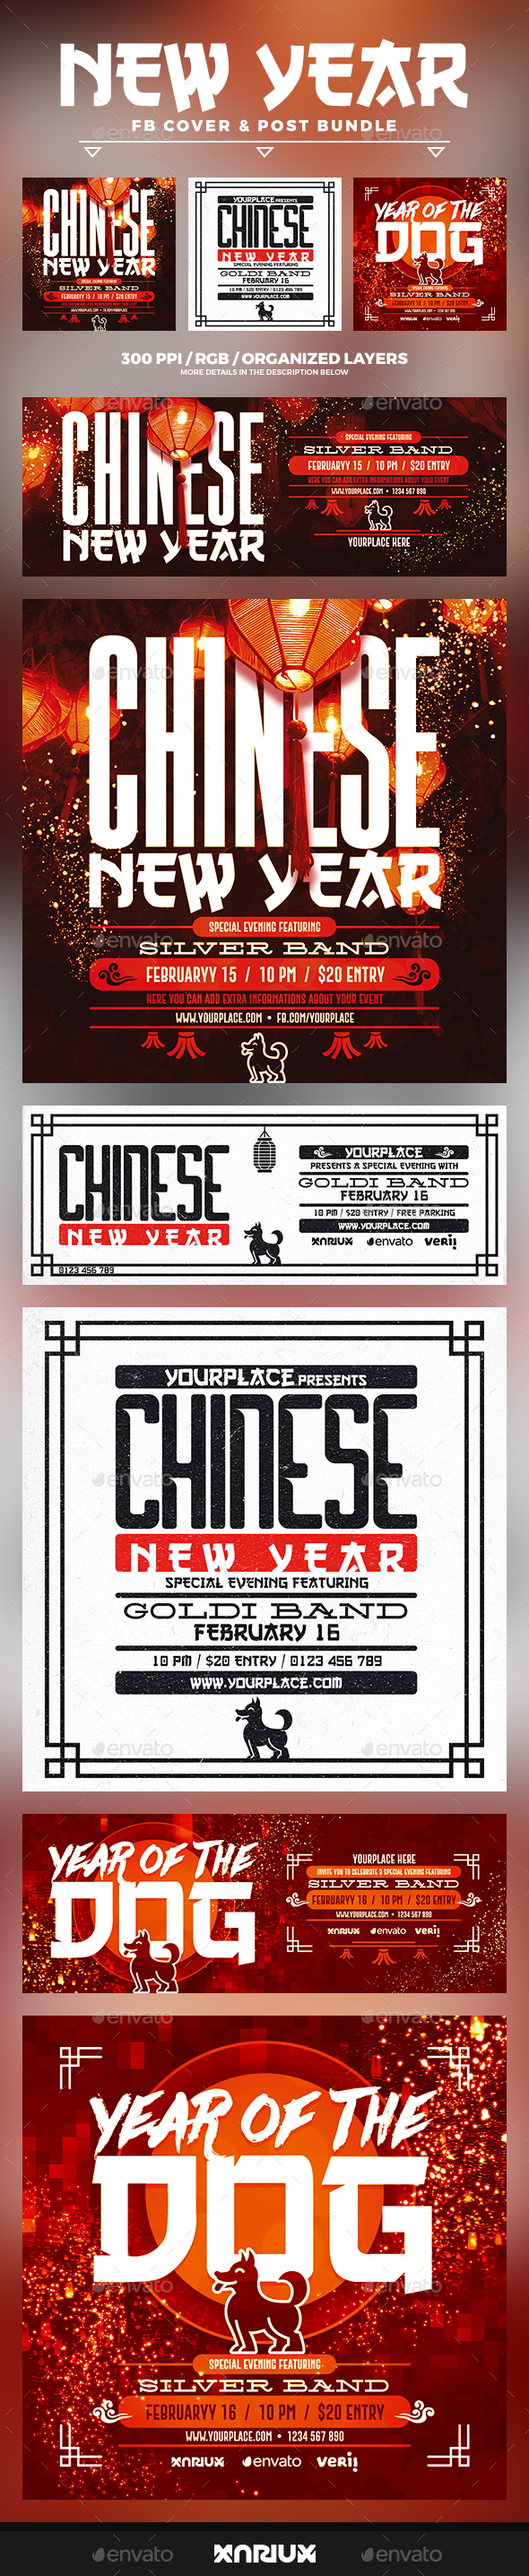 Chinese New Year Facebook Cover Bundle - Social Media Web Elements